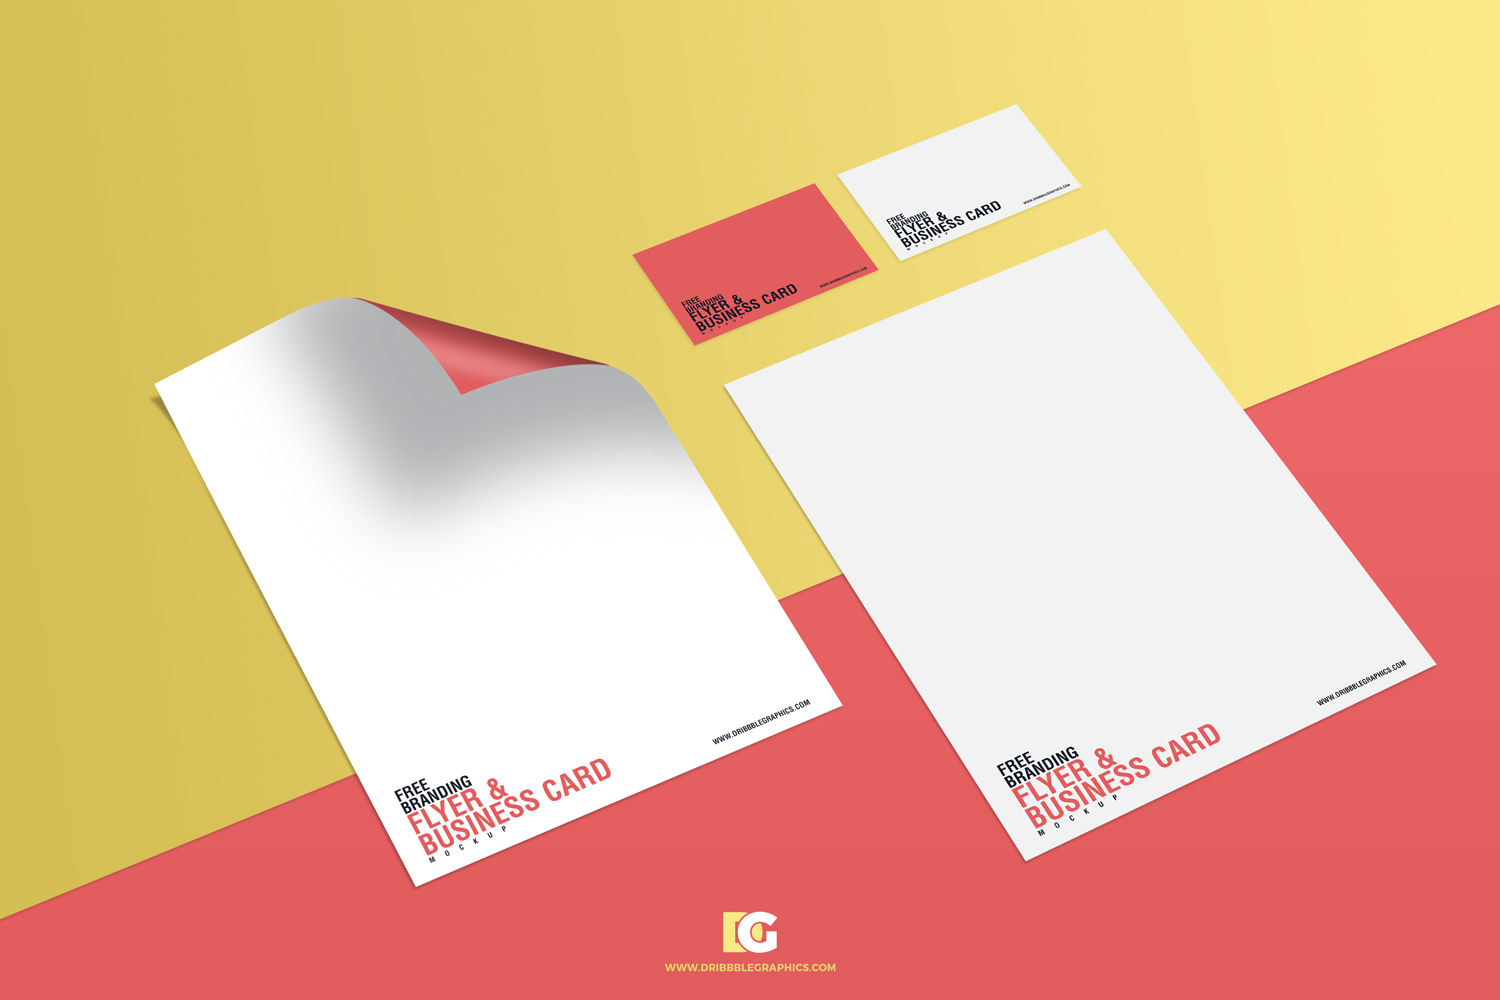 Free-Branding-Flyer-&-Business-Card-Mockup-Preview